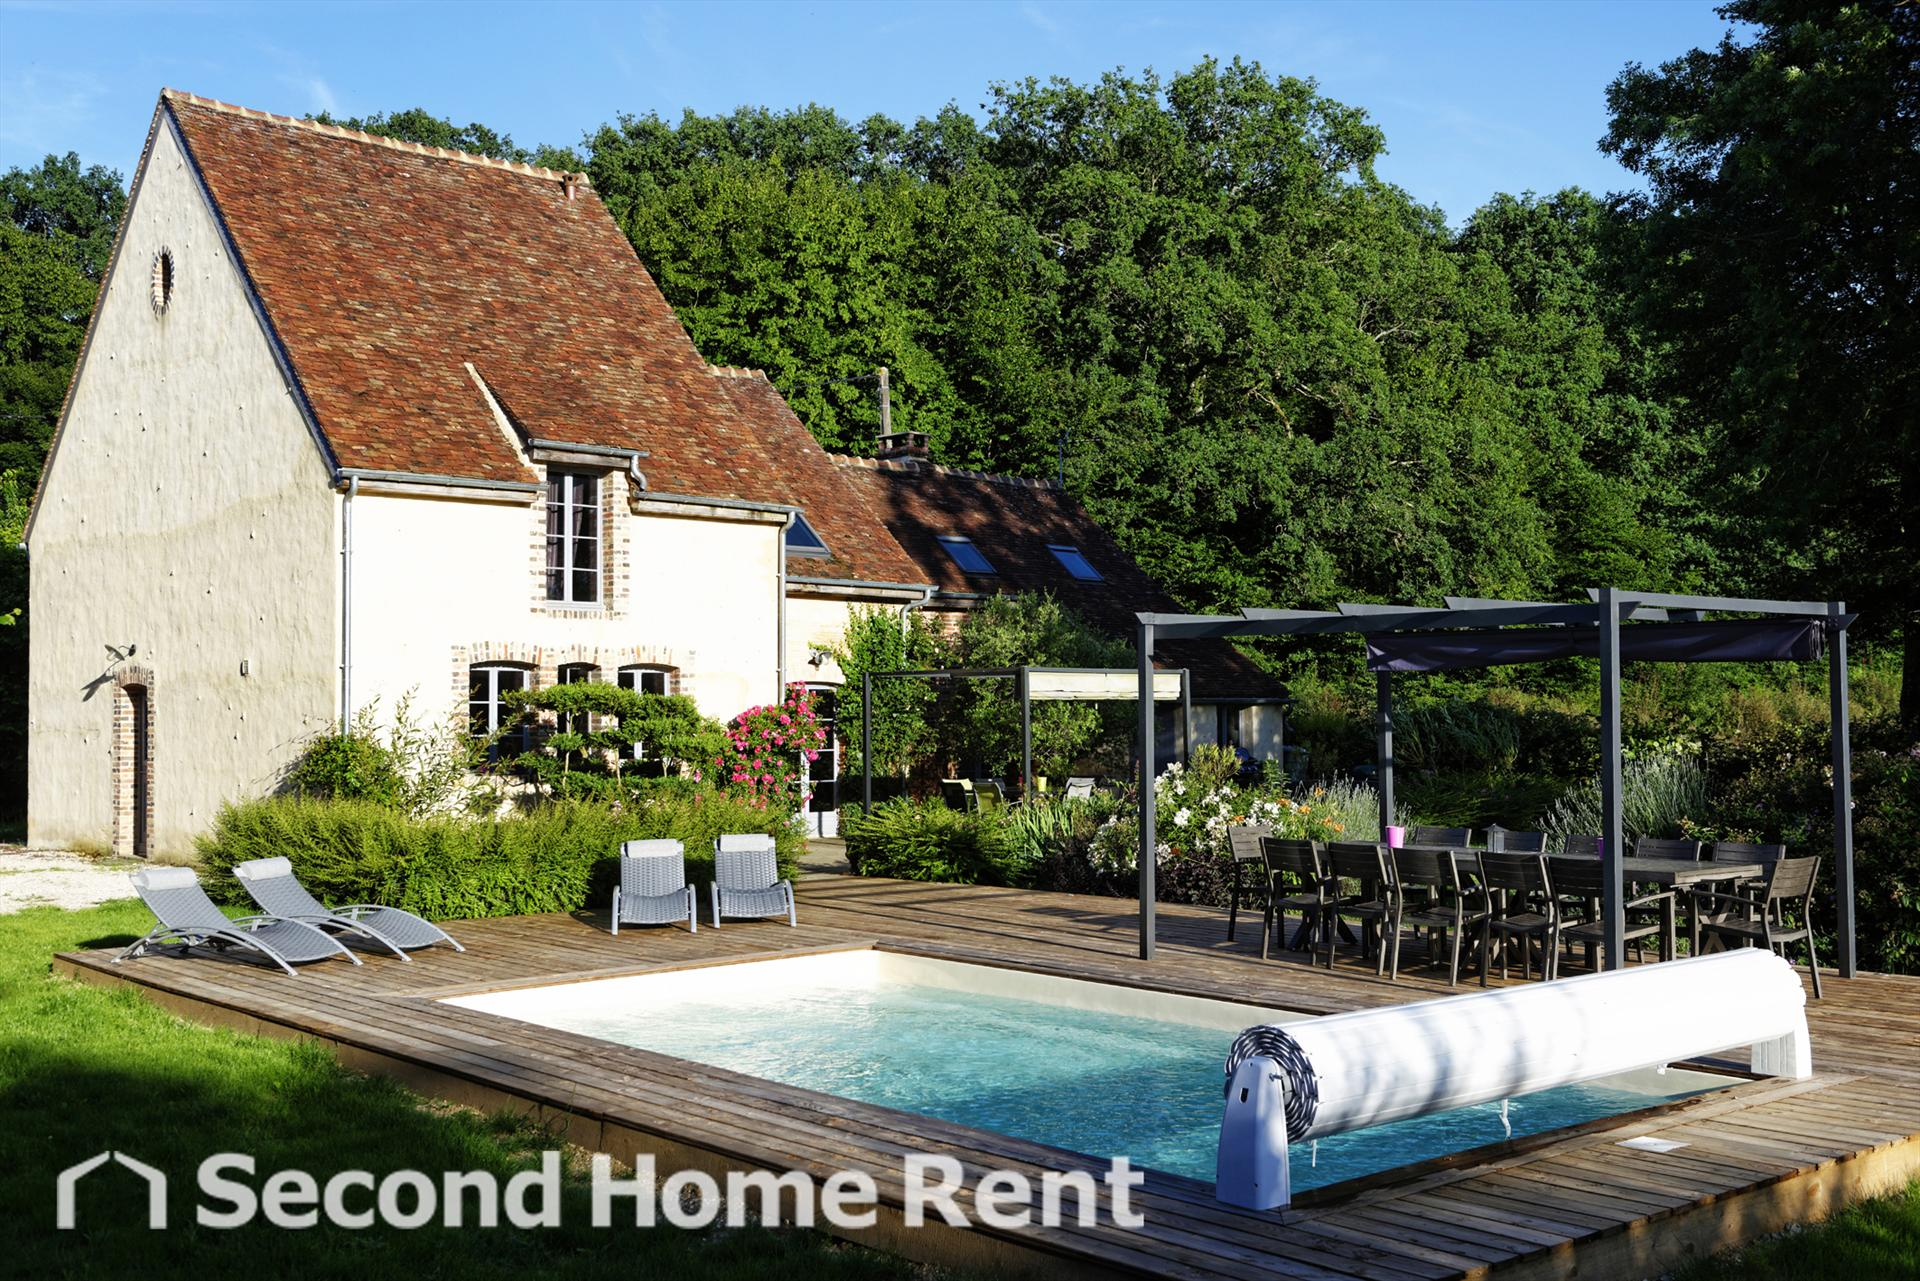 La Maison Agnes short stay, Wonderful and cheerful holiday home in Saint Fargeau en Puisaye, Burgundy, France  with private pool for 12 persons.....